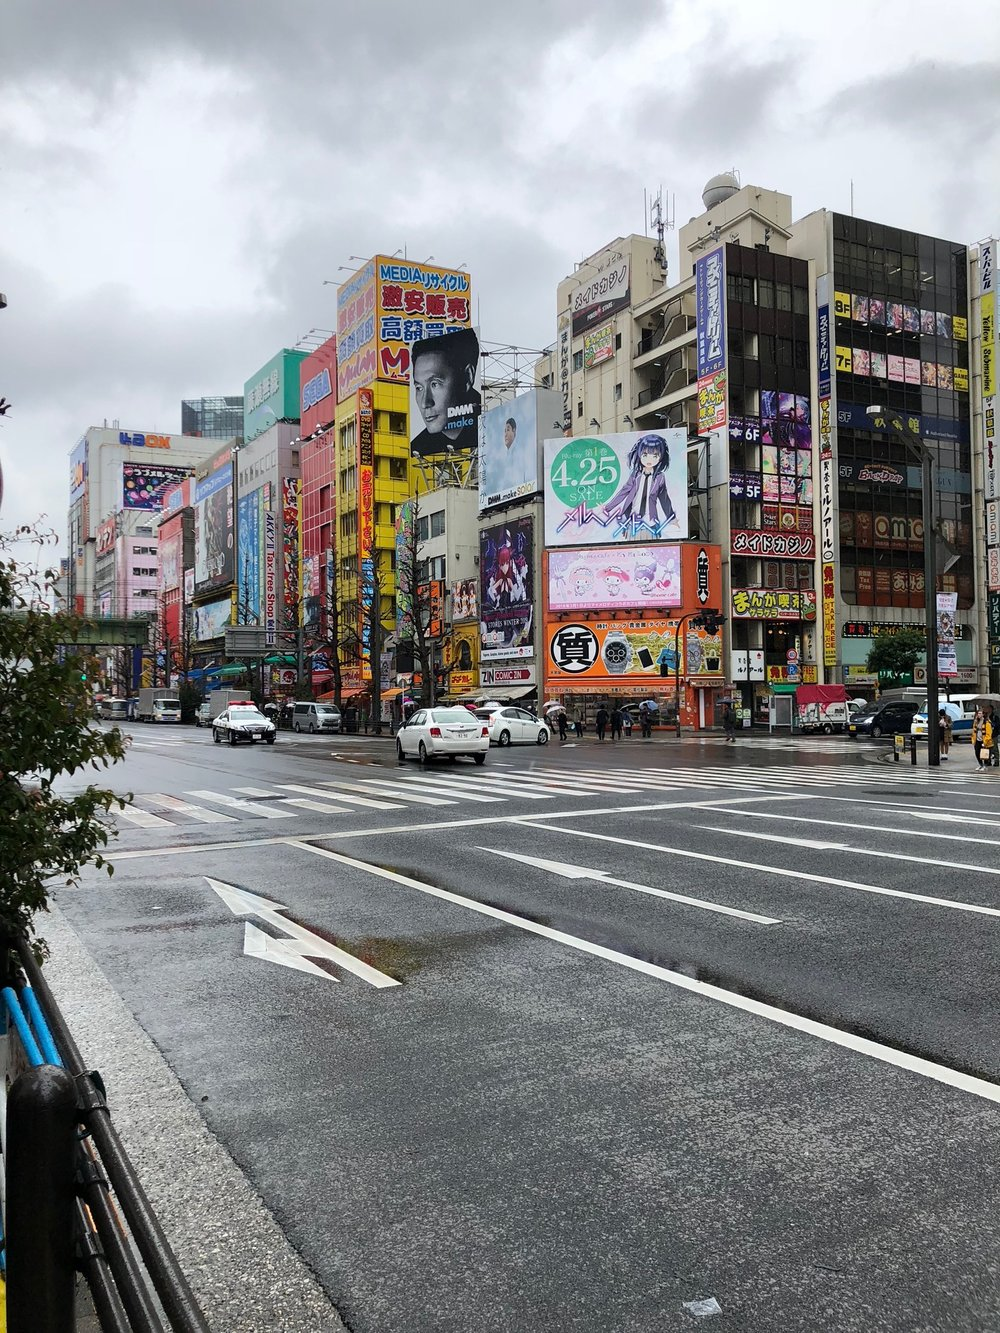 On our 2nd day back in Tokyo it was raining a bit in the morning. We started by exploring the northeastern part of the city, specifically an area known for its multi-story electronics stores and arcades called Akihabara.